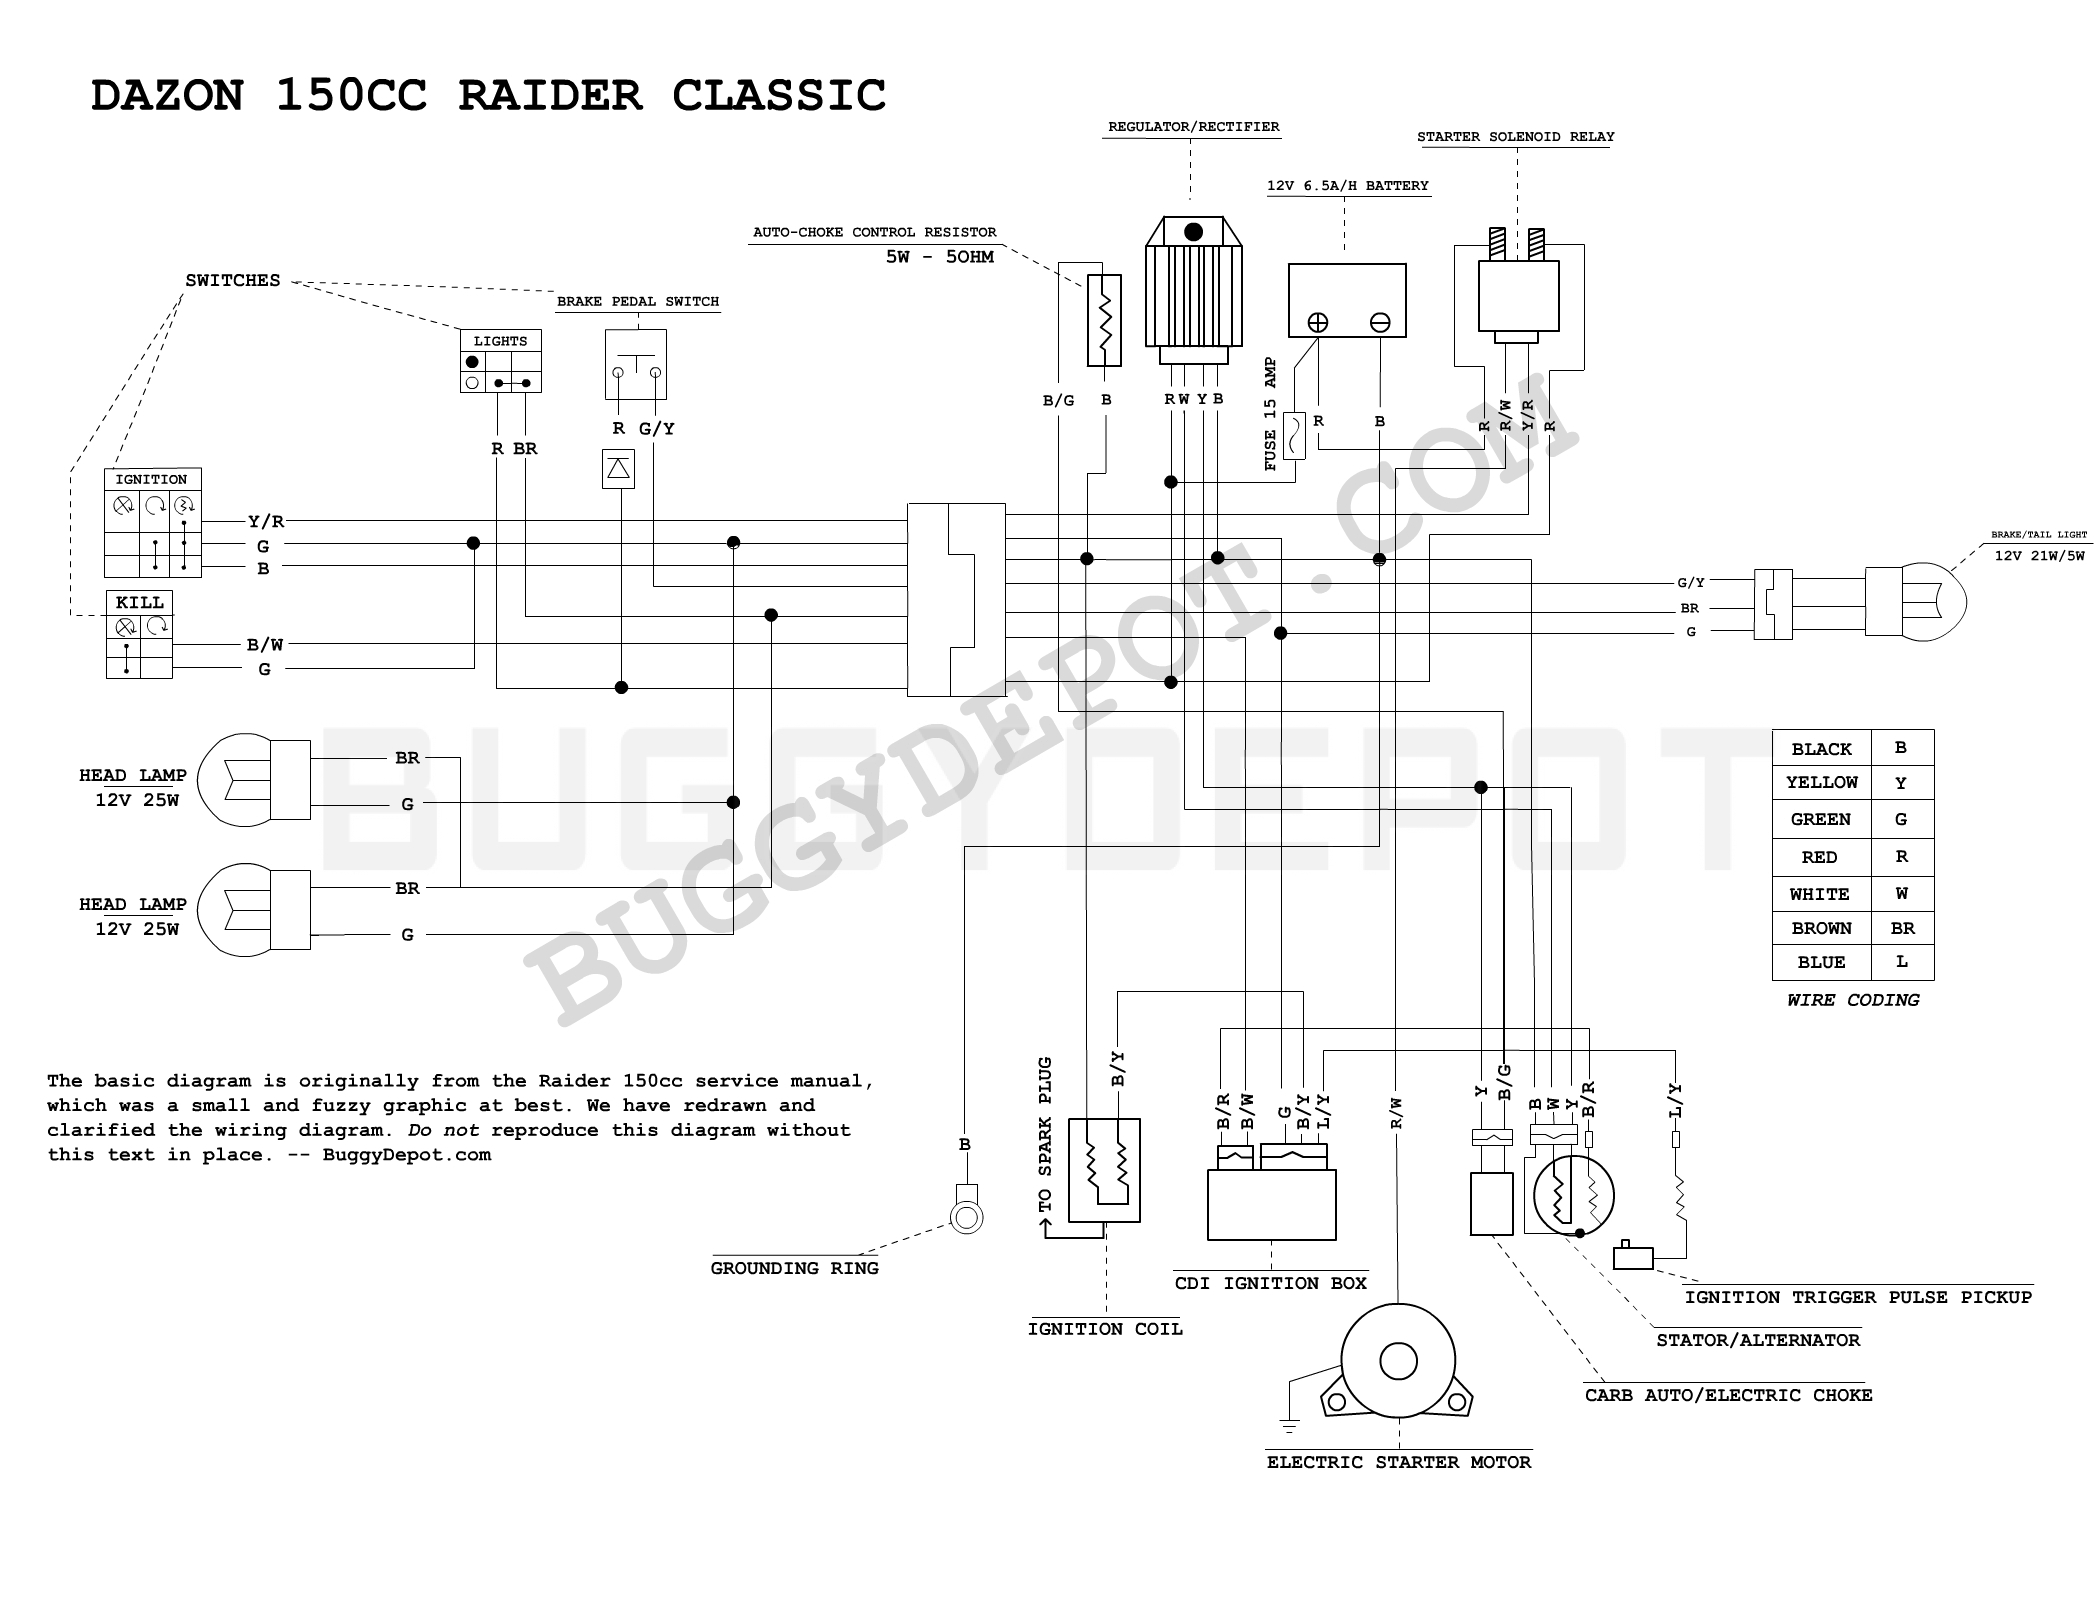 article_33_1278205207 crossfire 150r wiring diagram buggy depot technical center  at soozxer.org